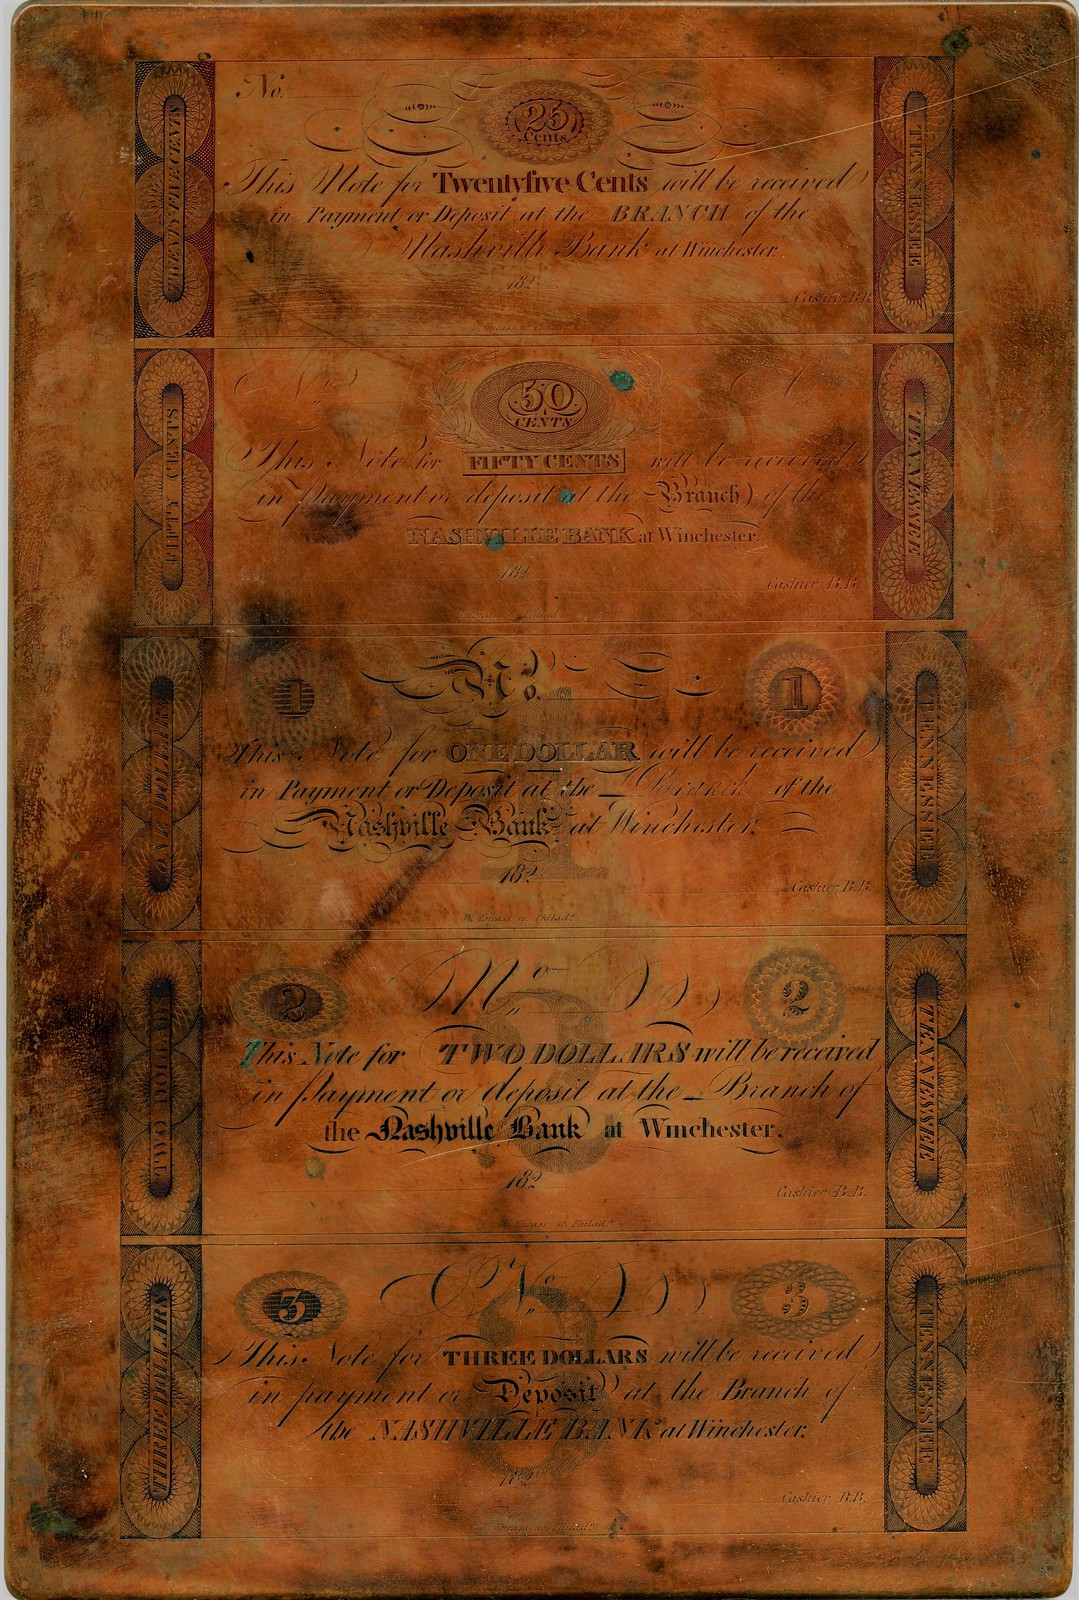 Kneass, Tennessee copper plate 931891_1